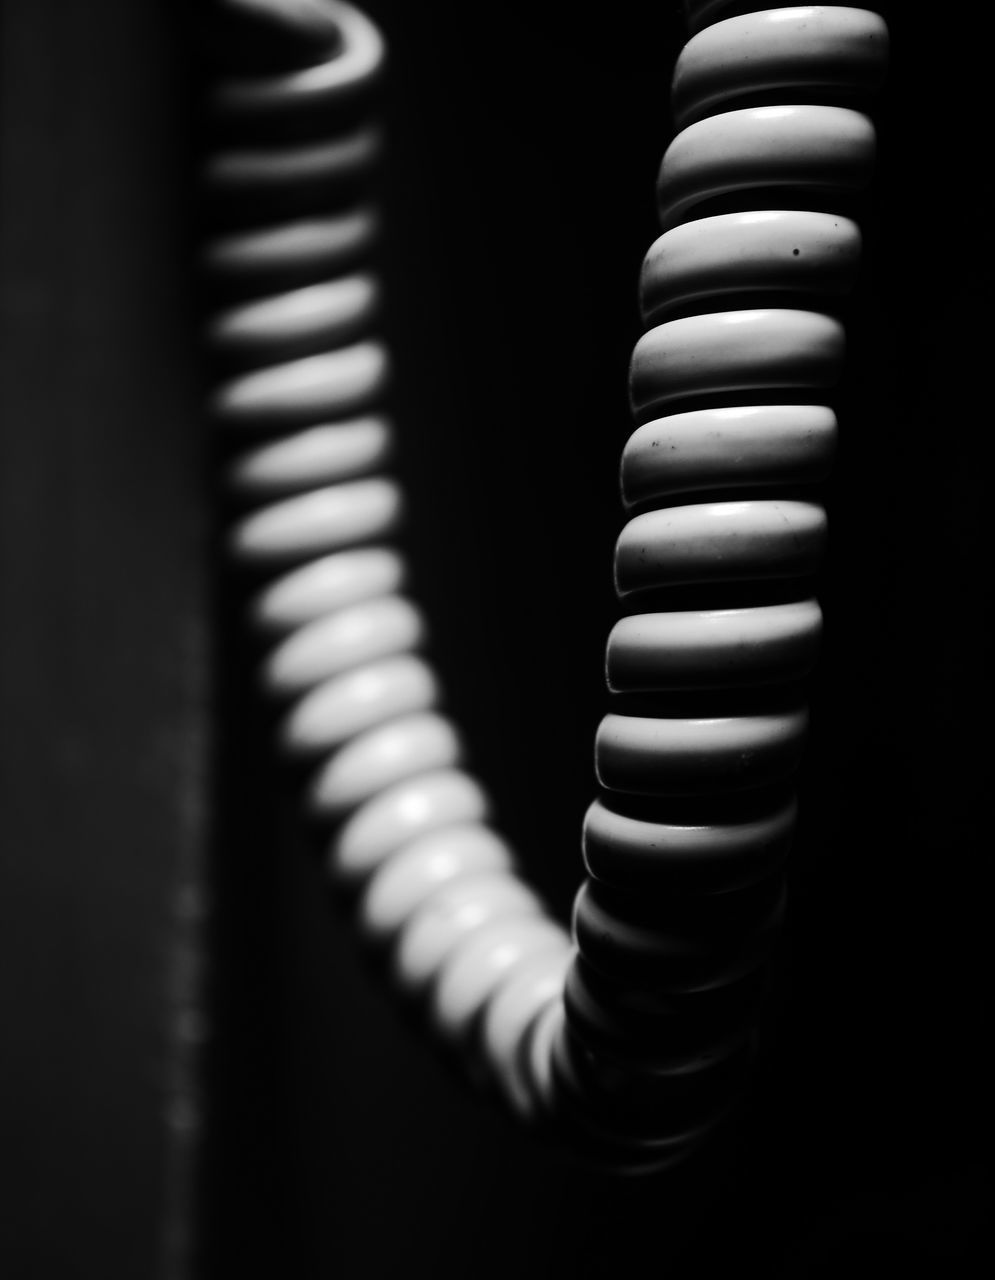 close-up, striped, spiral, no people, indoors, metal, electricity, cable, dark, focus on foreground, pattern, technology, connection, selective focus, single object, black color, still life, day, midsection, equipment, black background, electrical component, power supply